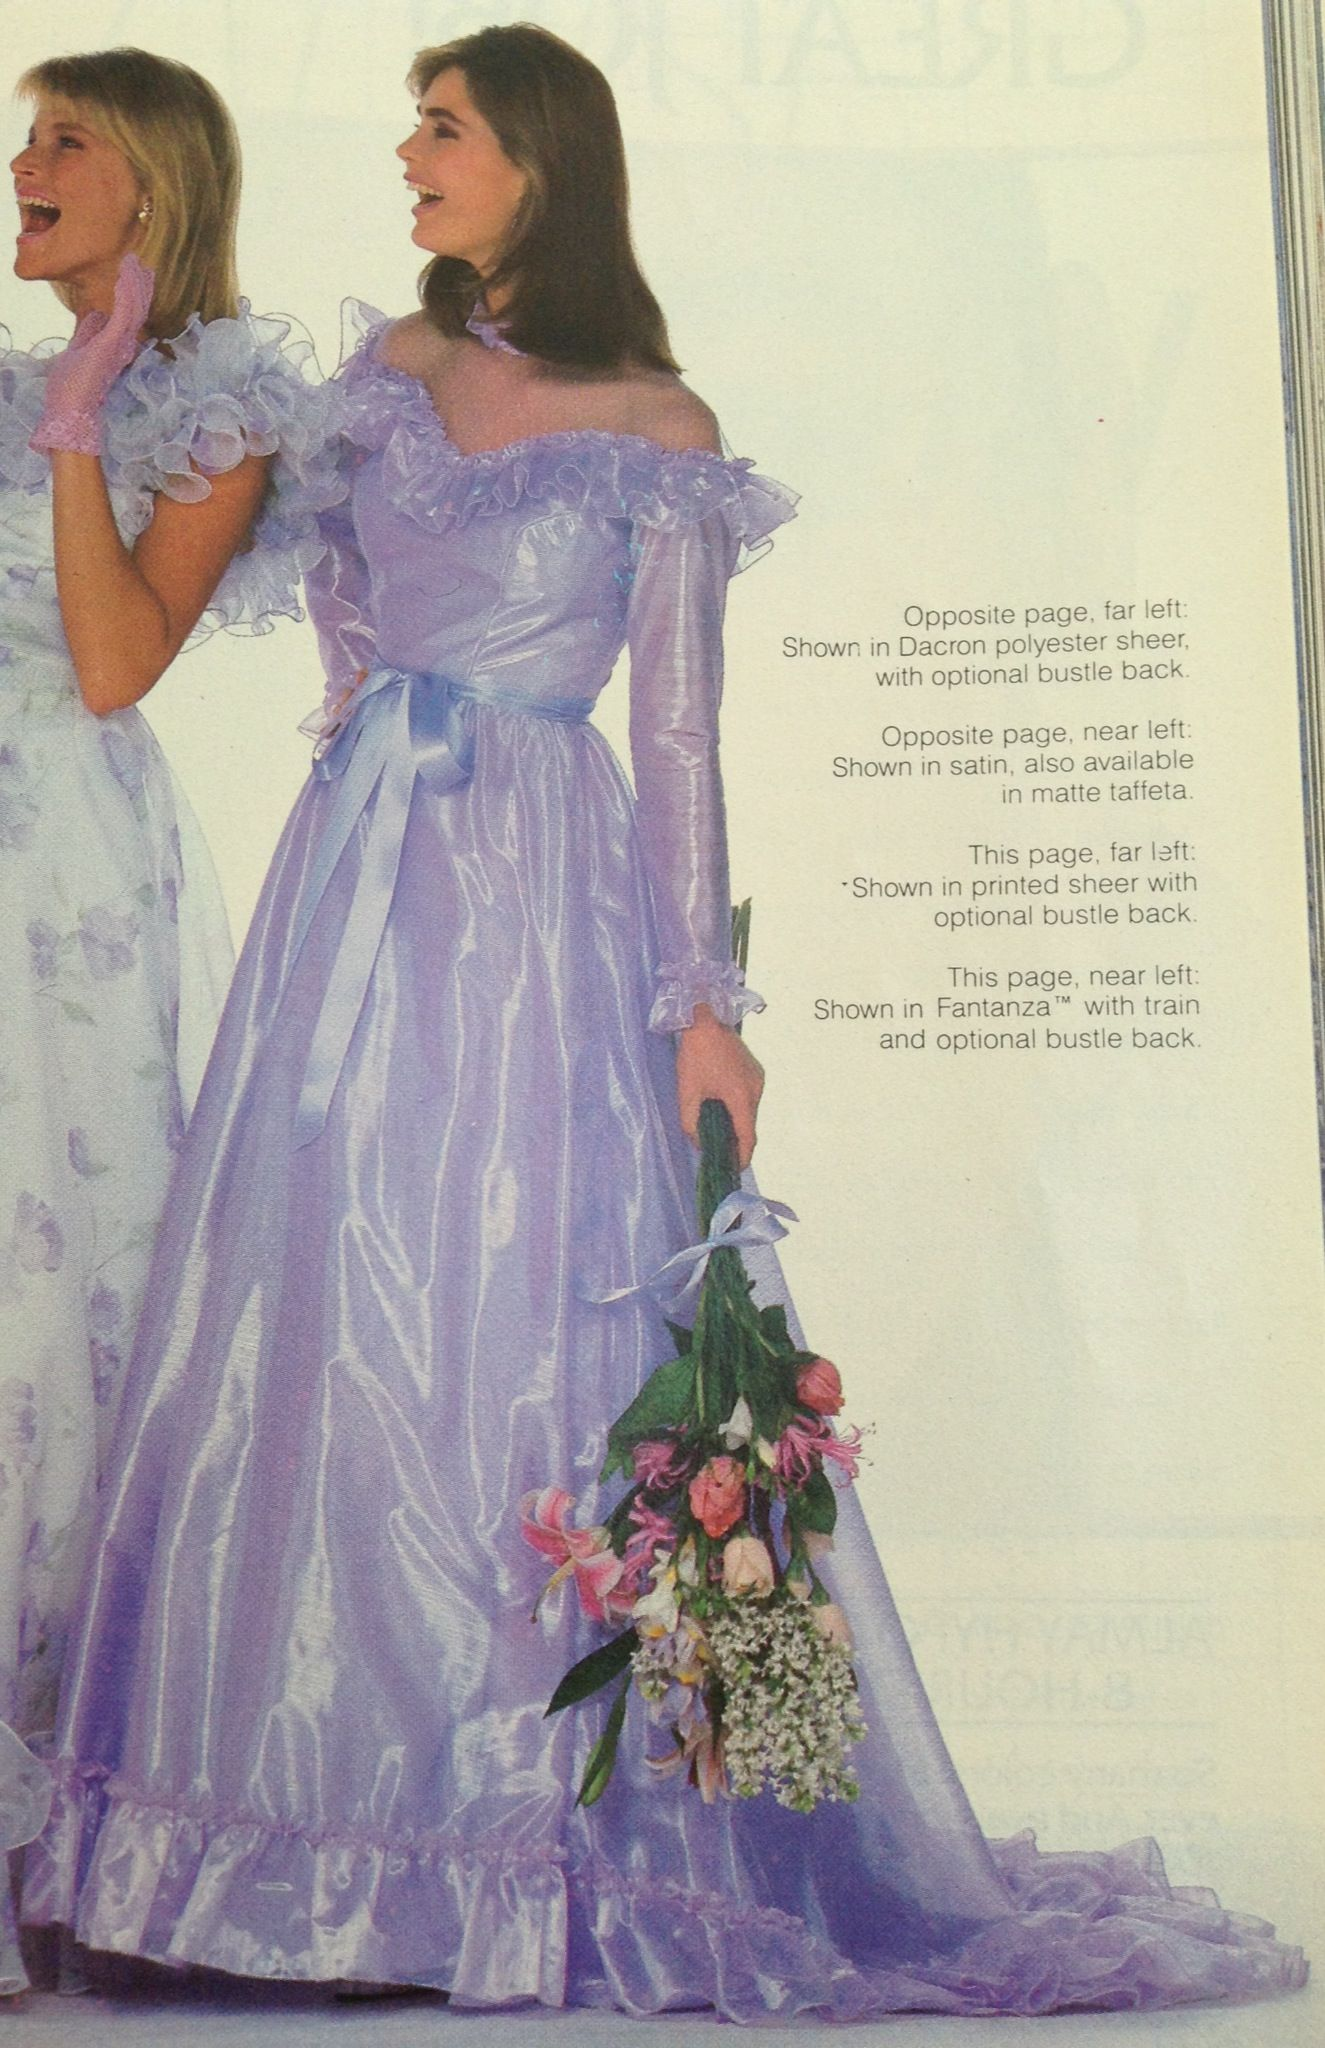 Bridesmaid Prom Gown Made Of Finest Fantanza Bridesmaid Dresses 80s Prom Dress Costume Dresses [ 2048 x 1325 Pixel ]